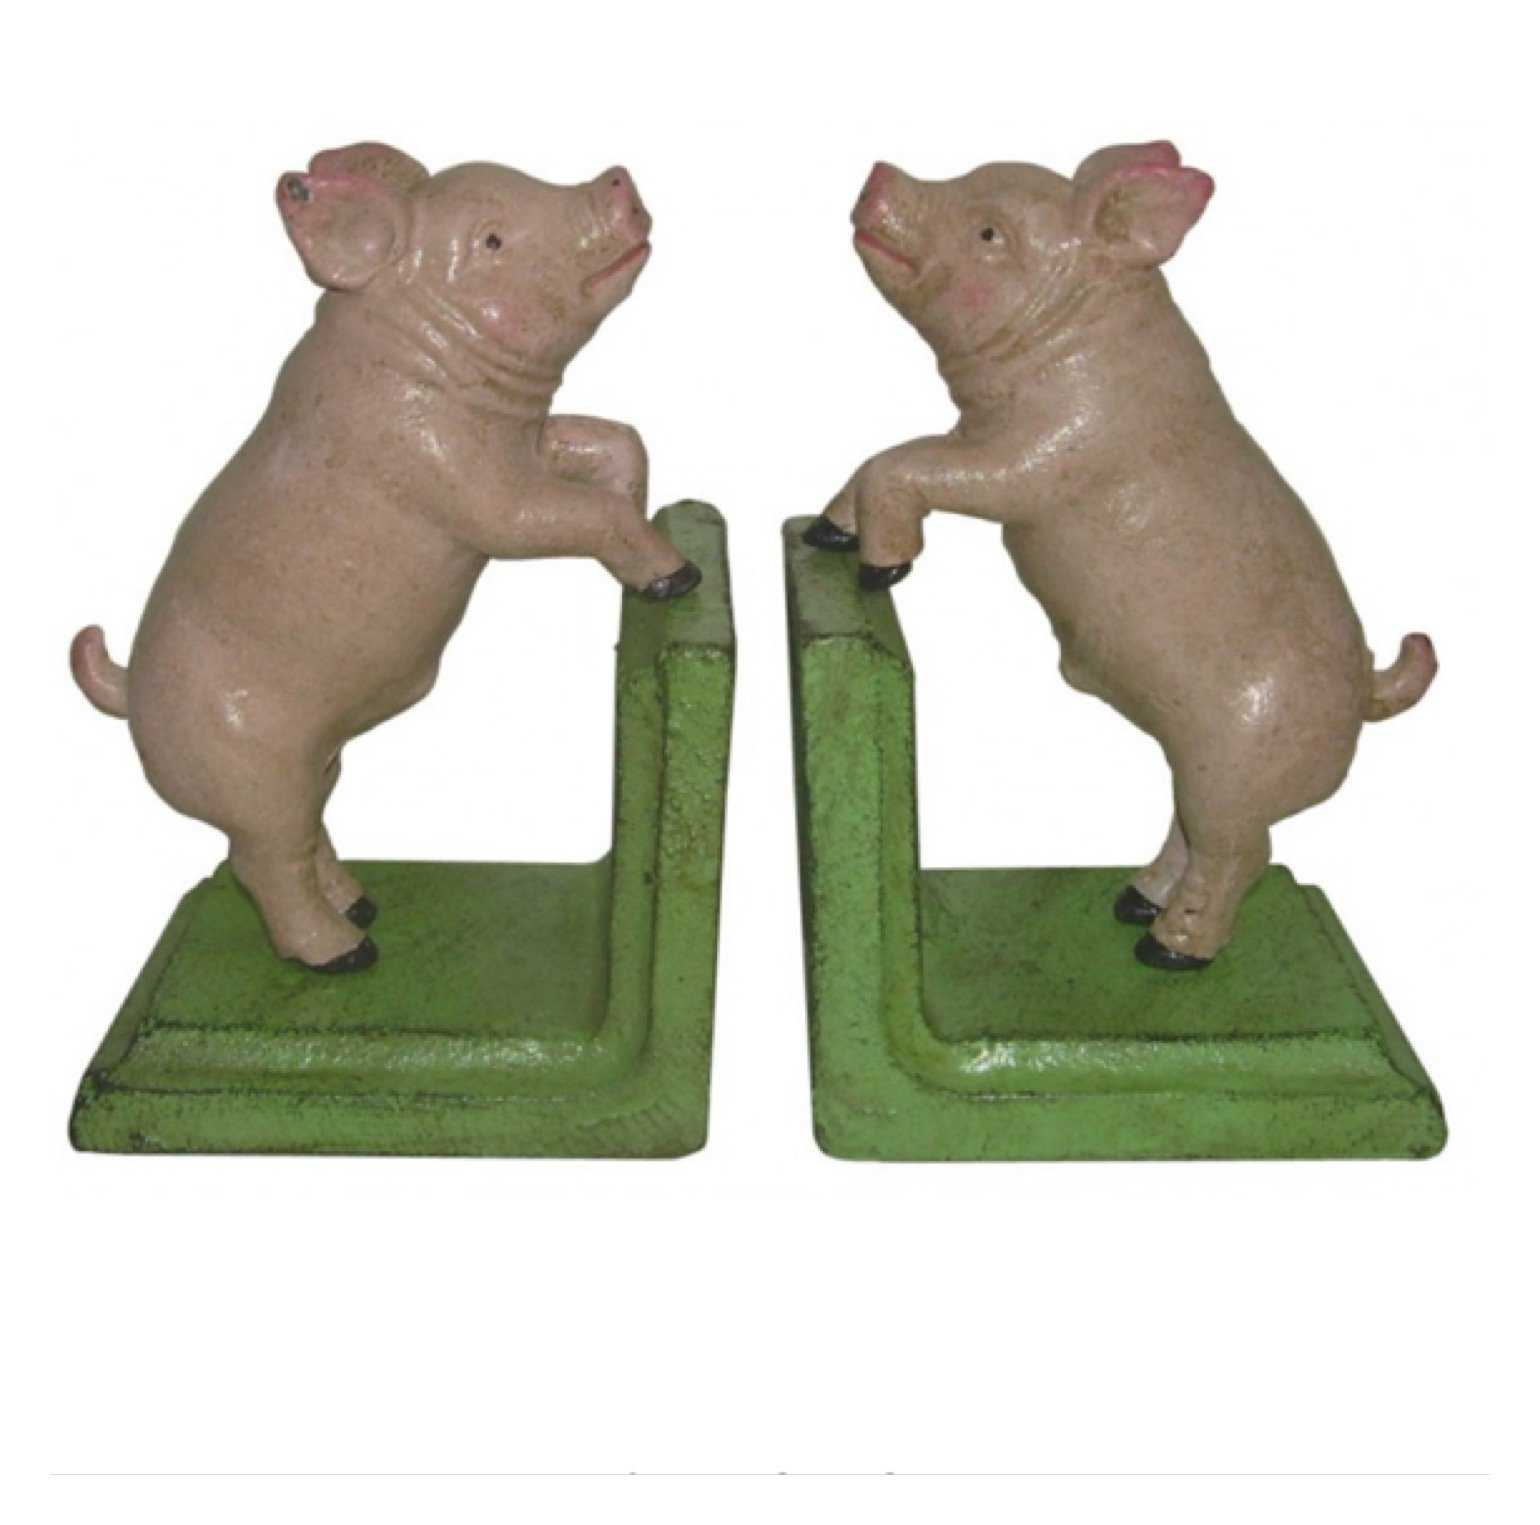 Book Ends Pig Farmhouse | The Renmy Store